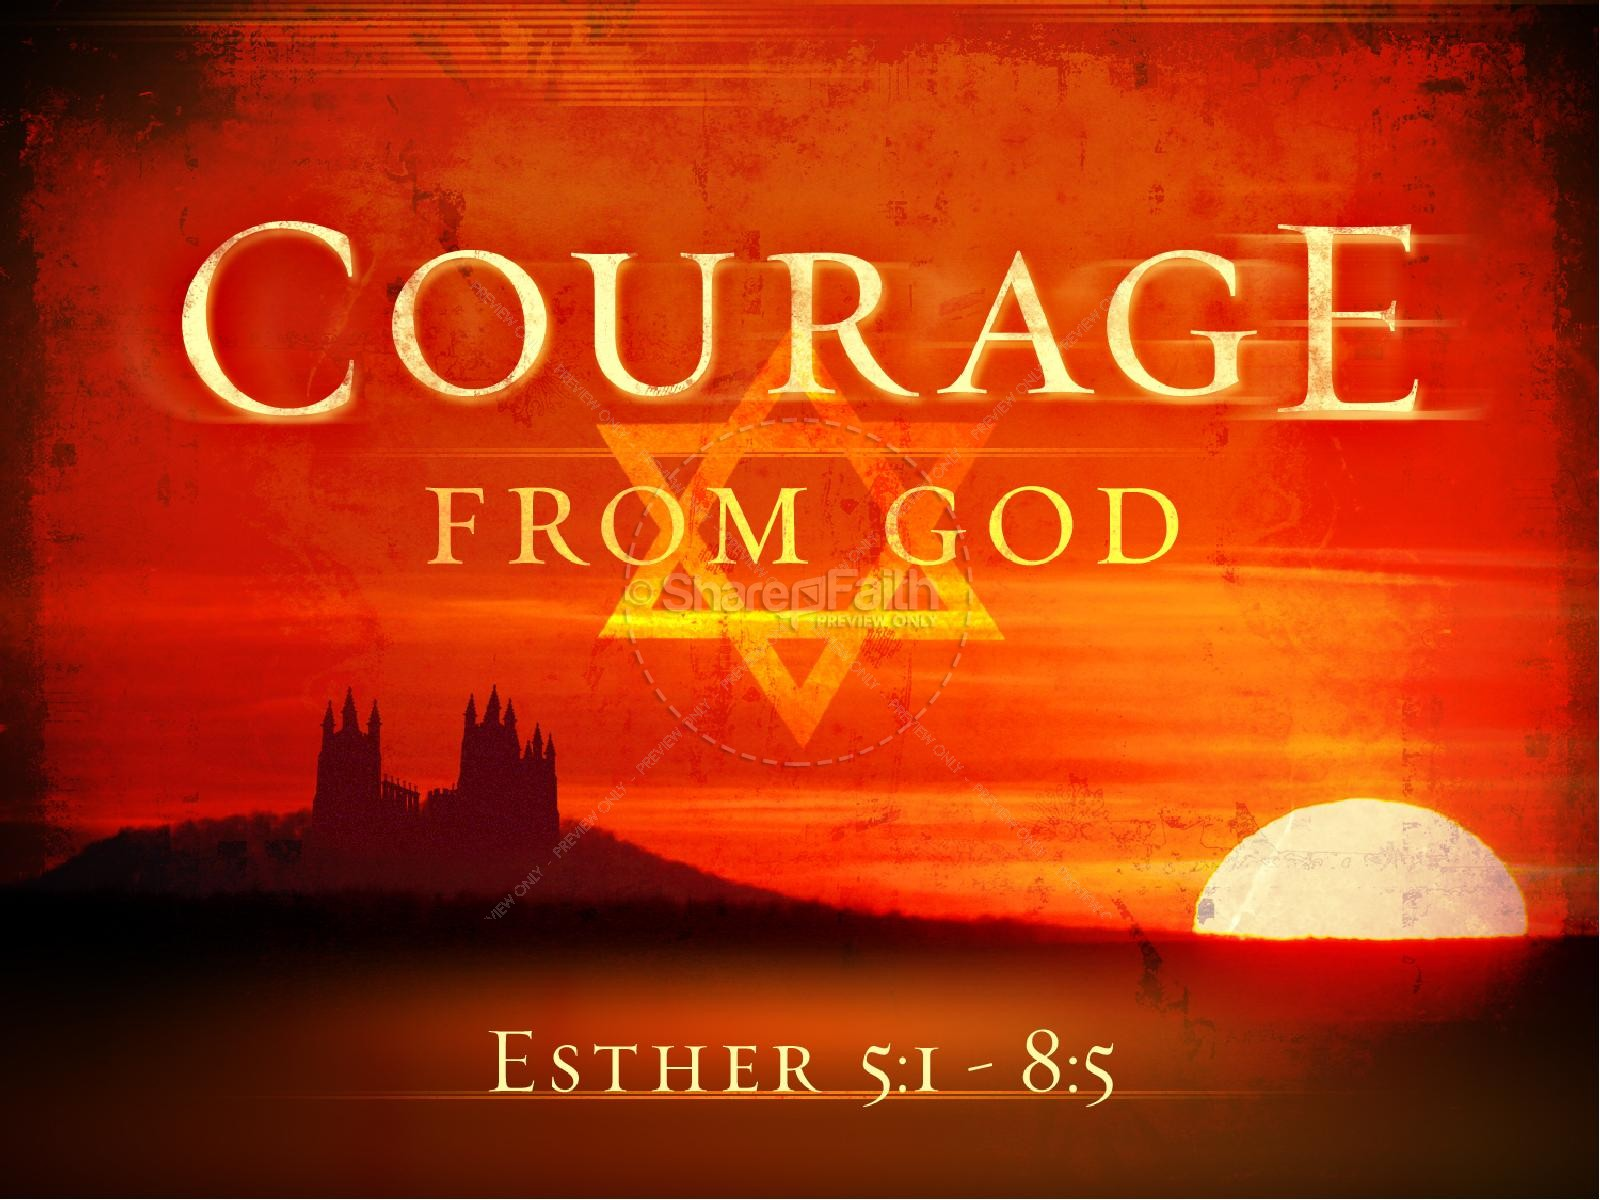 Be strong and courageous church powerpoint template powerpoint sermons jewish purim powerpoint toneelgroepblik Choice Image